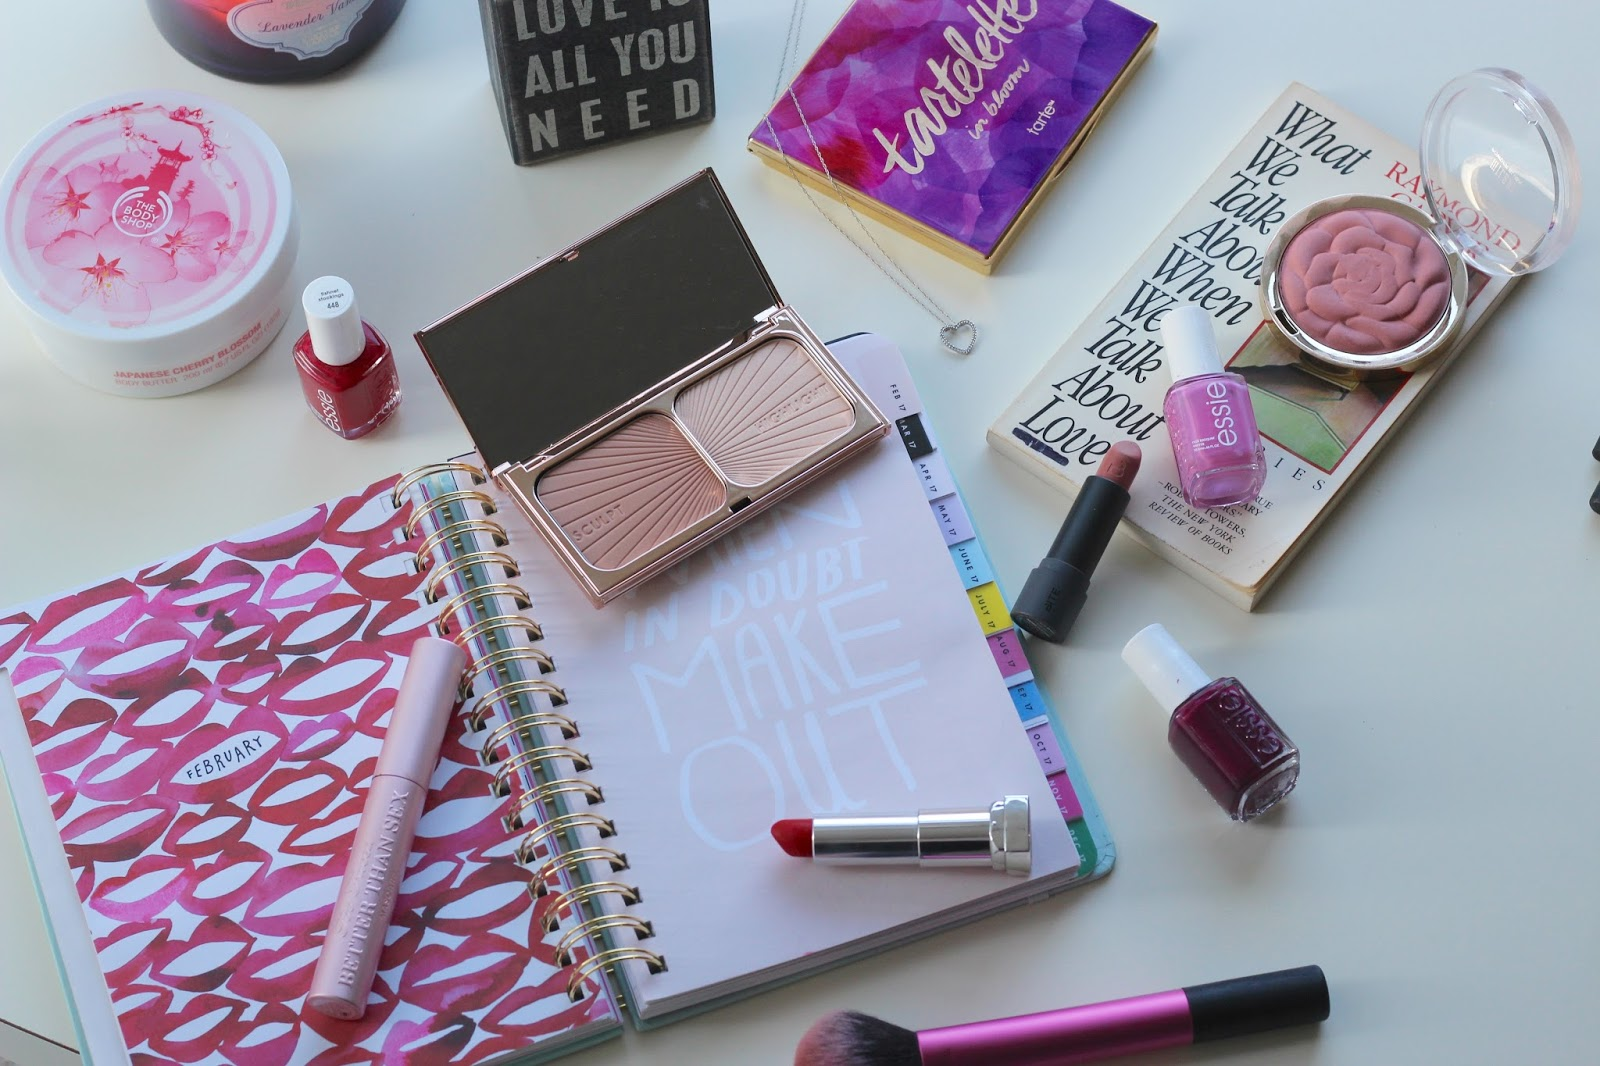 Valentine's Day Beauty Products & Self-Love